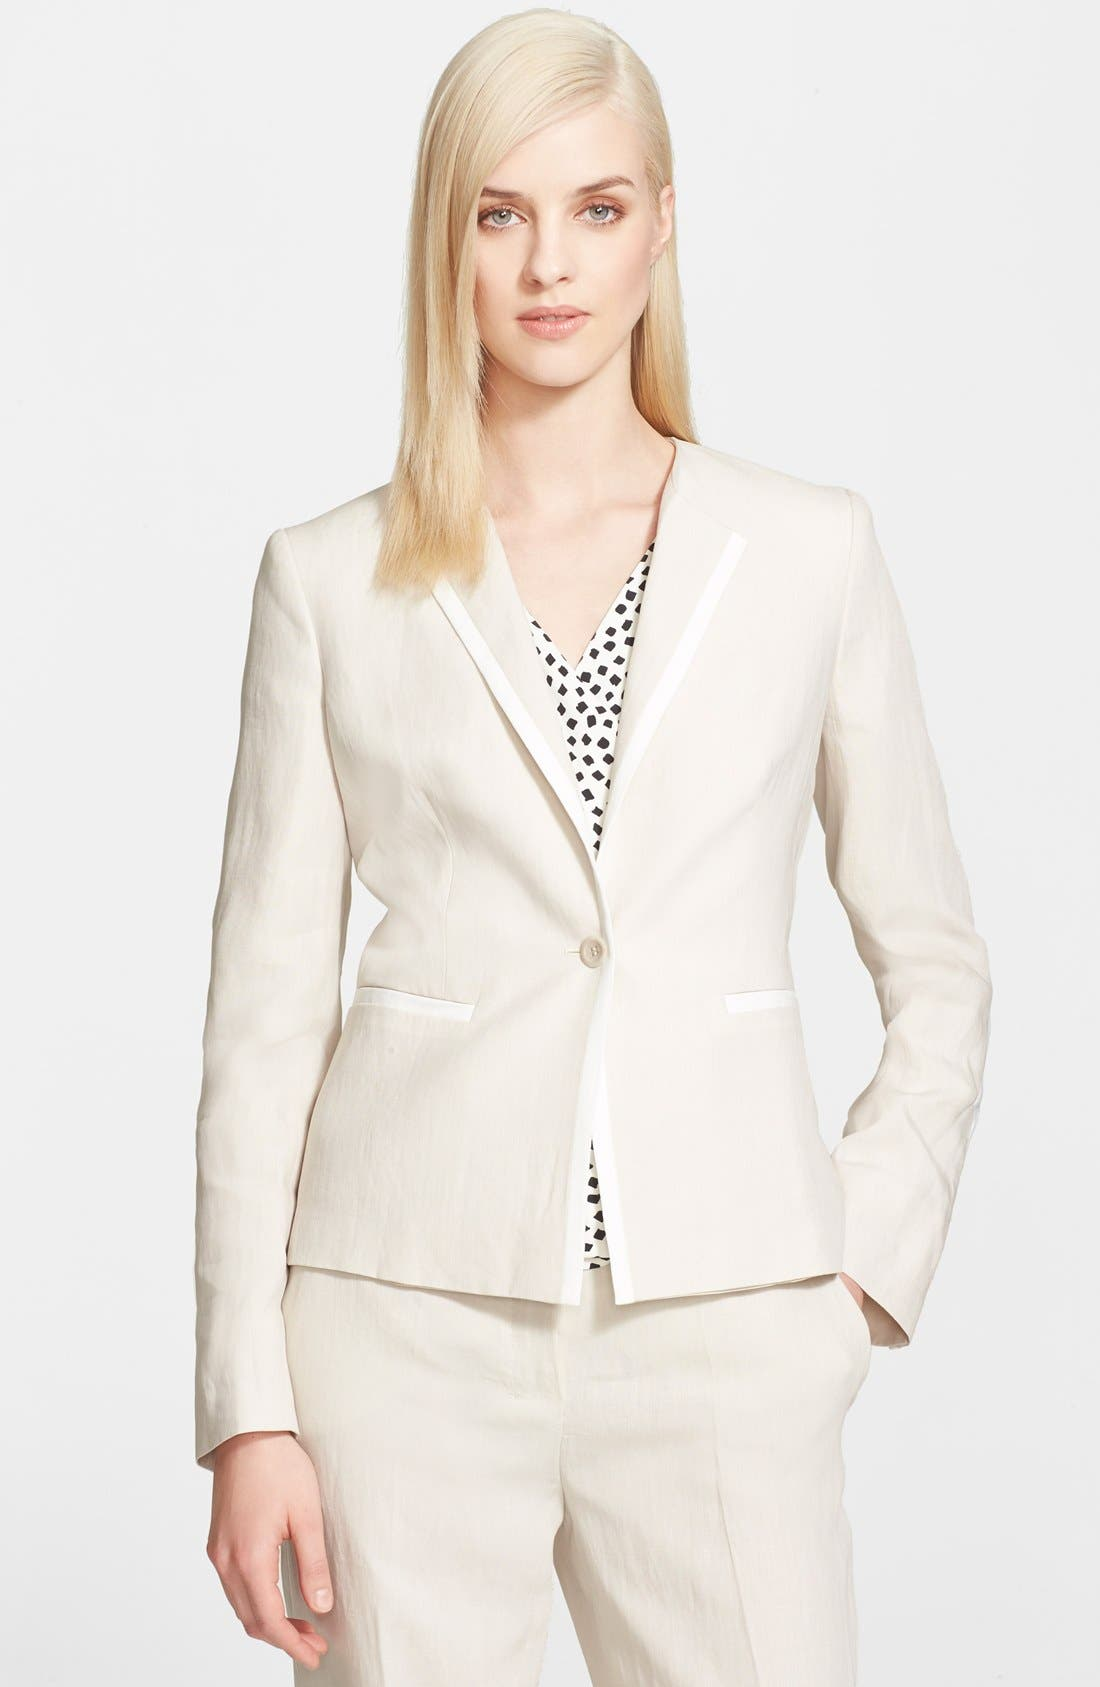 Alternate Image 1 Selected - Max Mara 'Ghinea' One-Button Linen Jacket